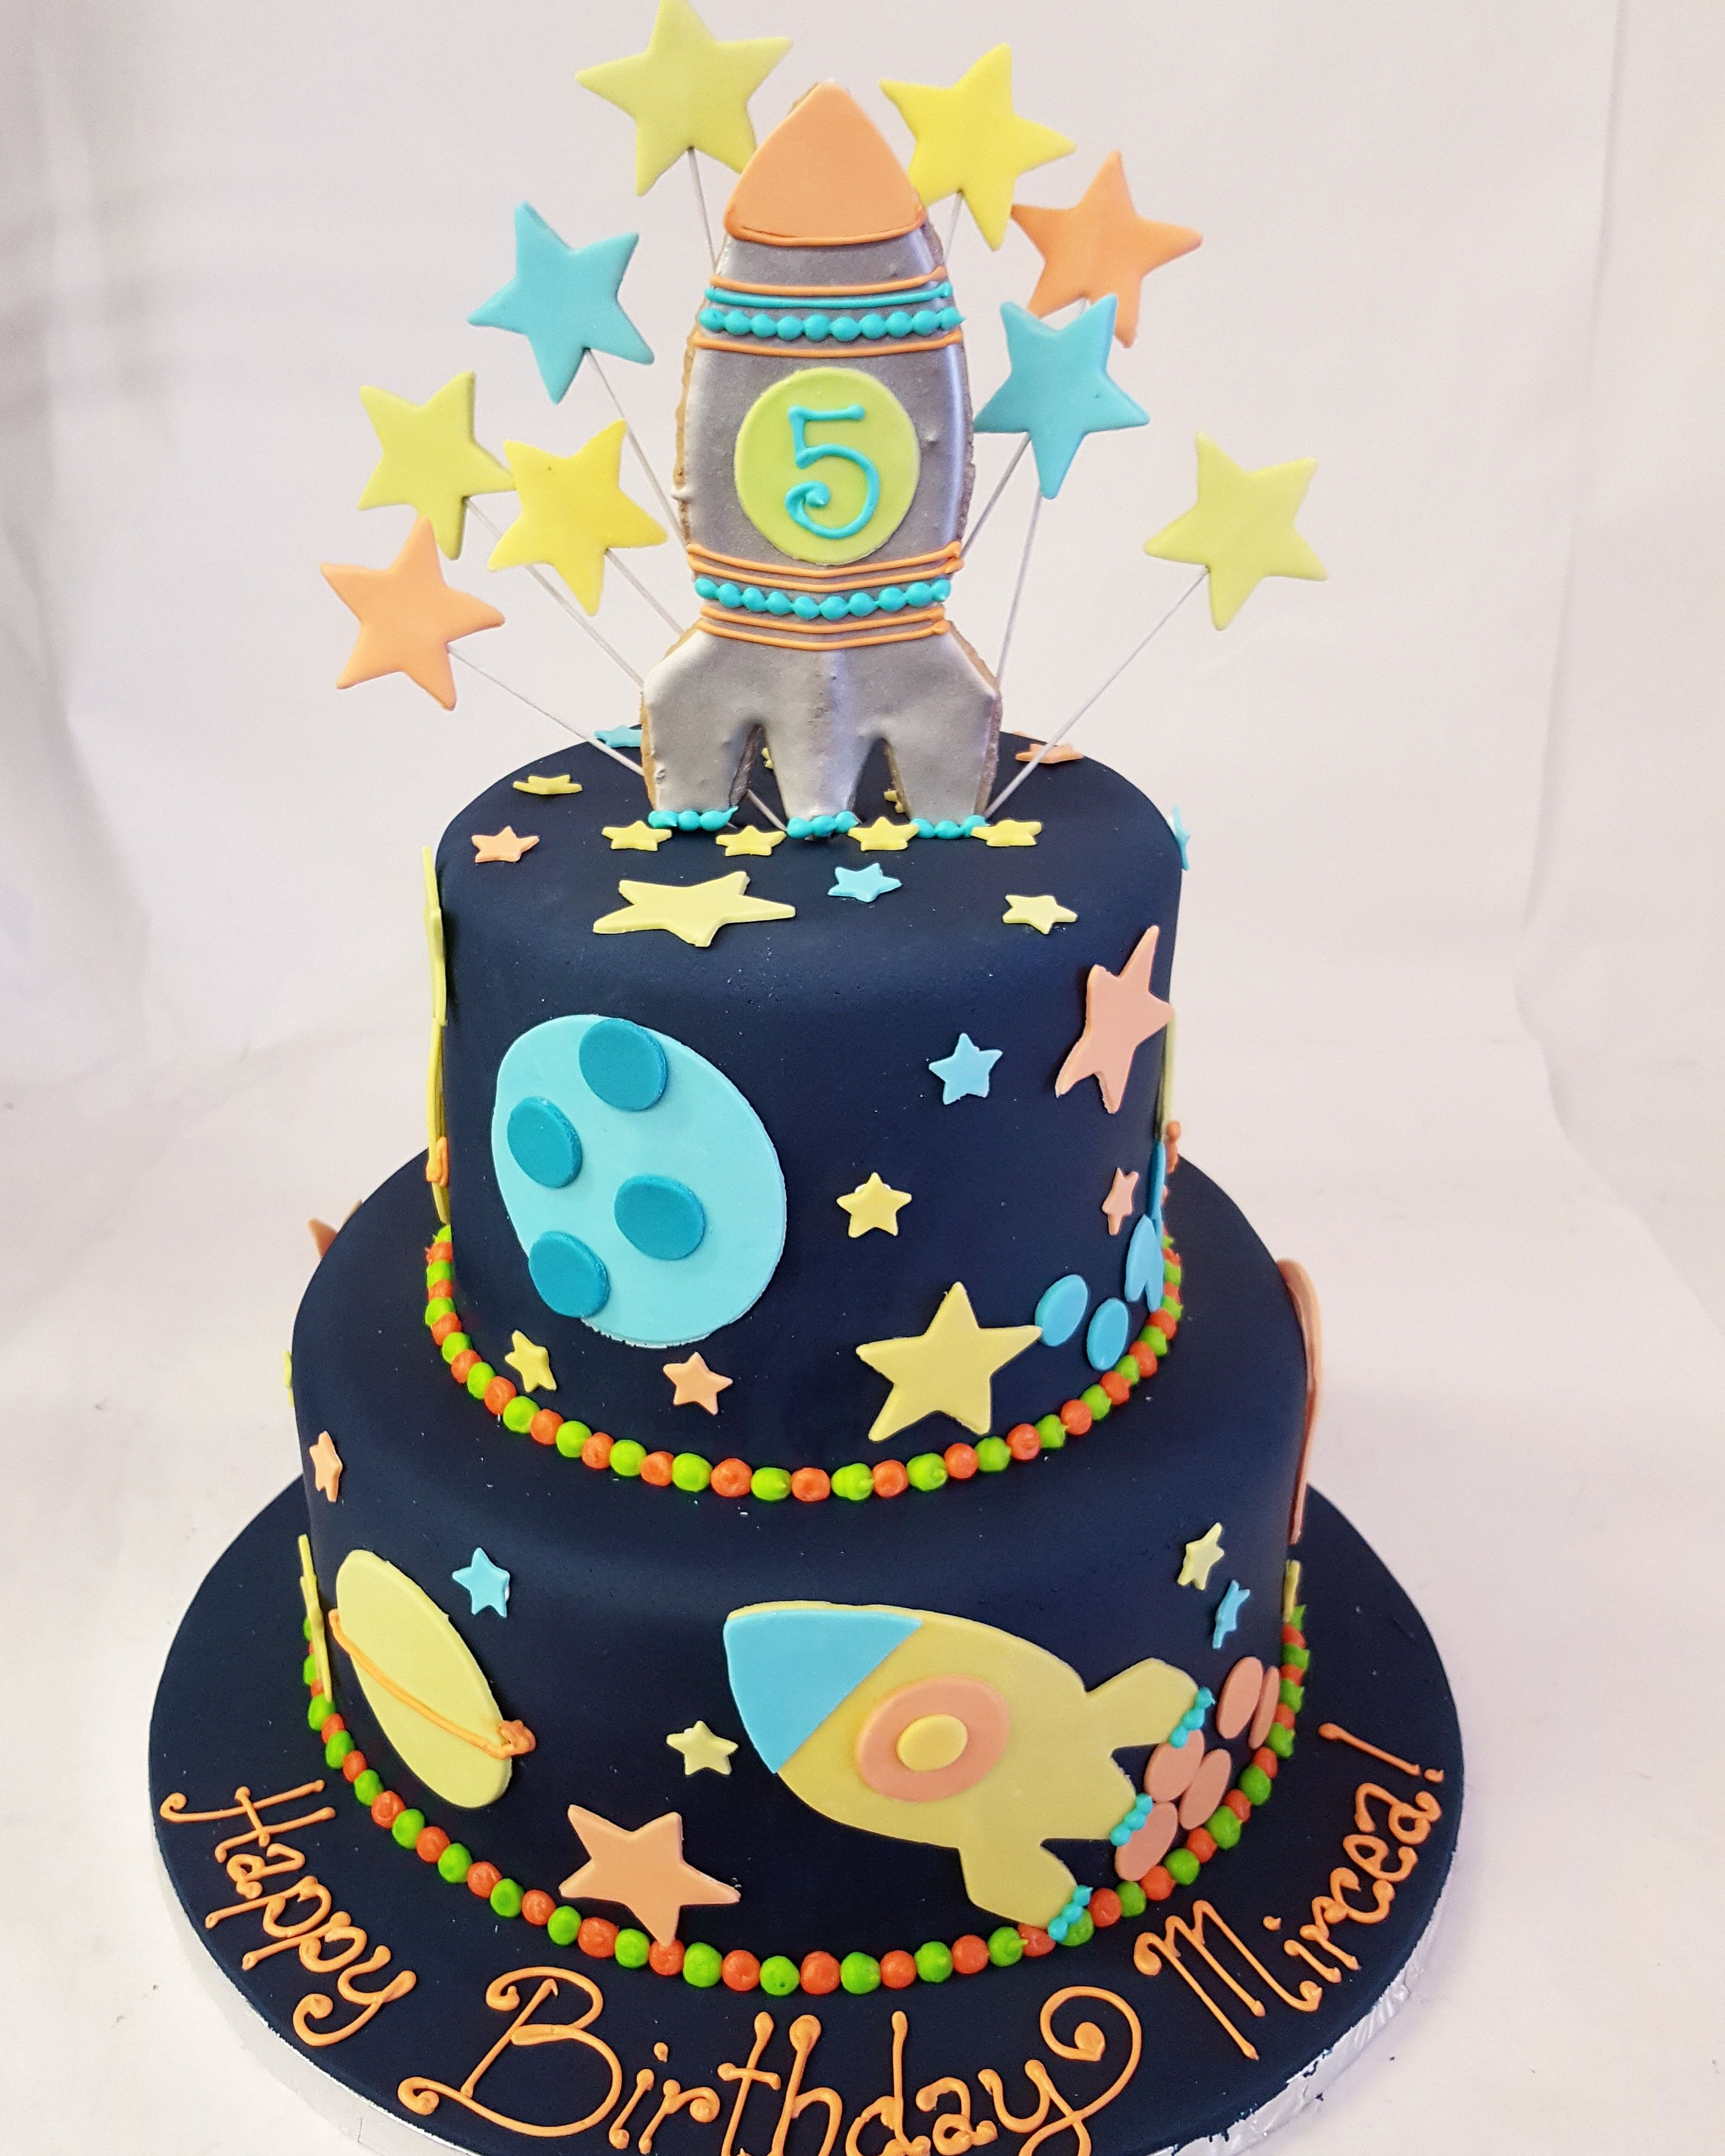 Pleasant Edible Space This Space Cake Is Out Of This World With Images Funny Birthday Cards Online Overcheapnameinfo